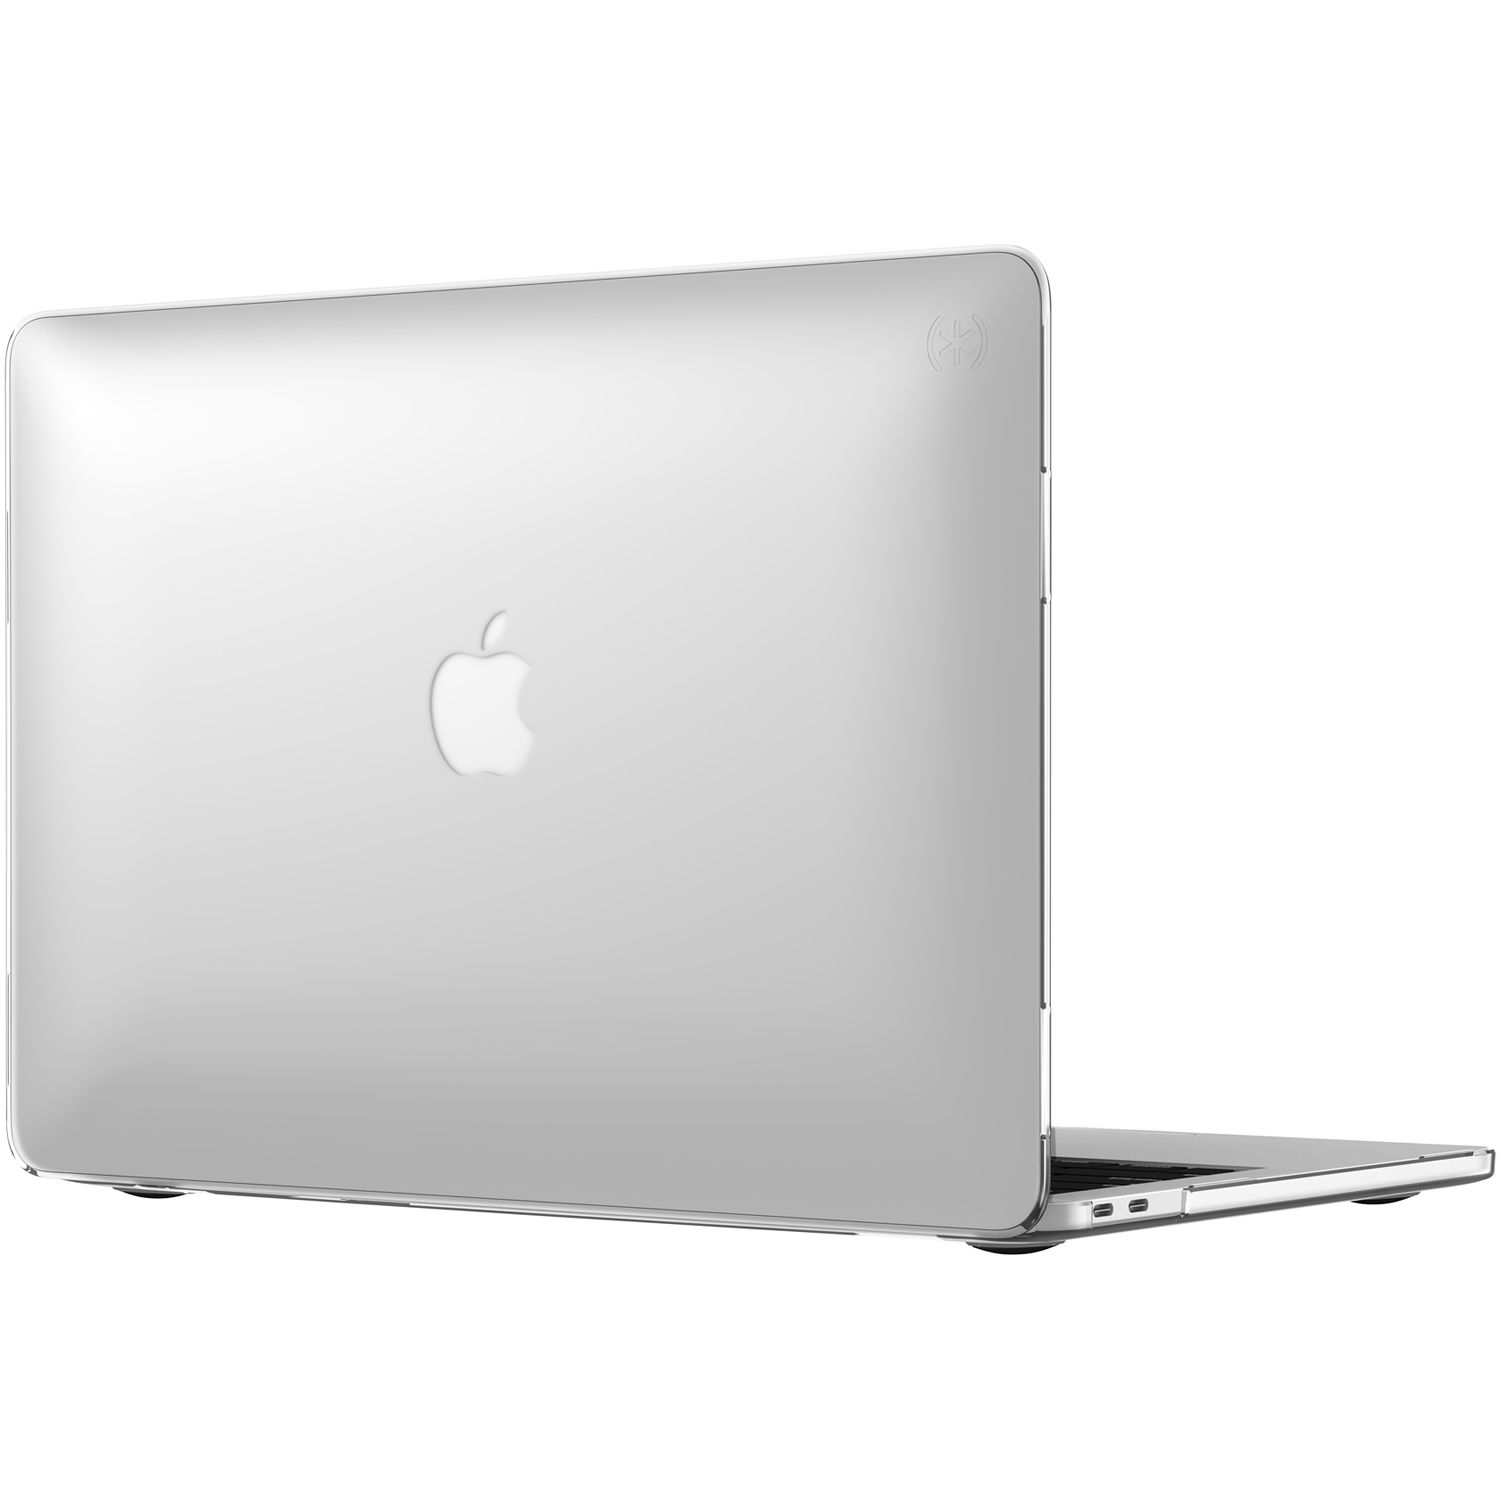 "Speck SmartShell for 13.3"" MacBook Pro (Late 2016, Clear)"